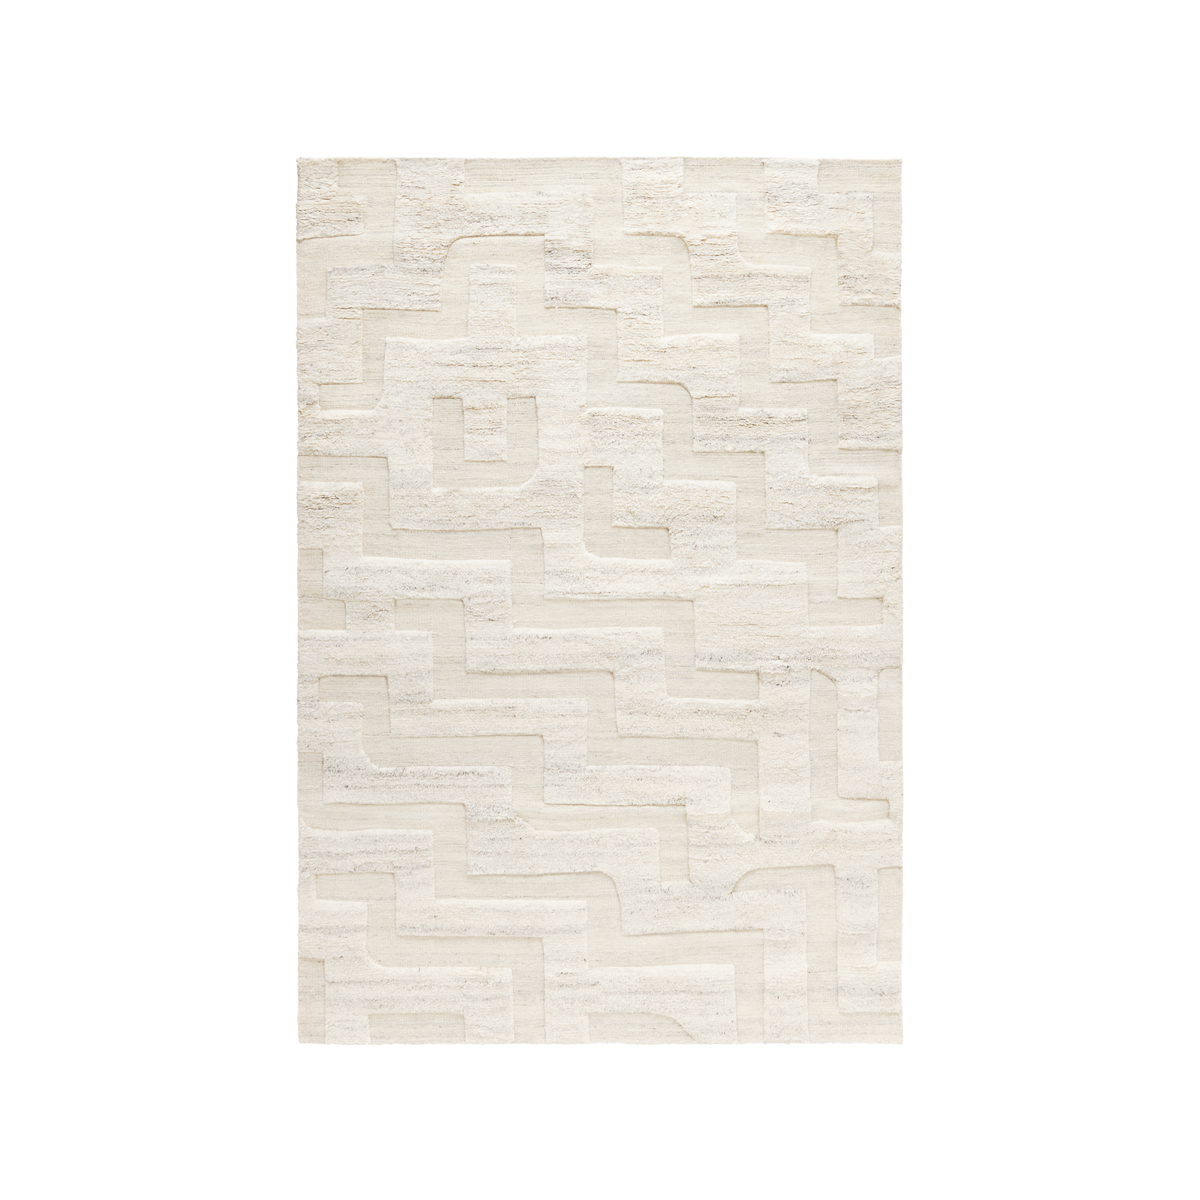 Product image of the shaggy rug Boho in the color Cream Mix. The rug has a graphic pattern where the pattern is flatweave and the base is shaggy wool.